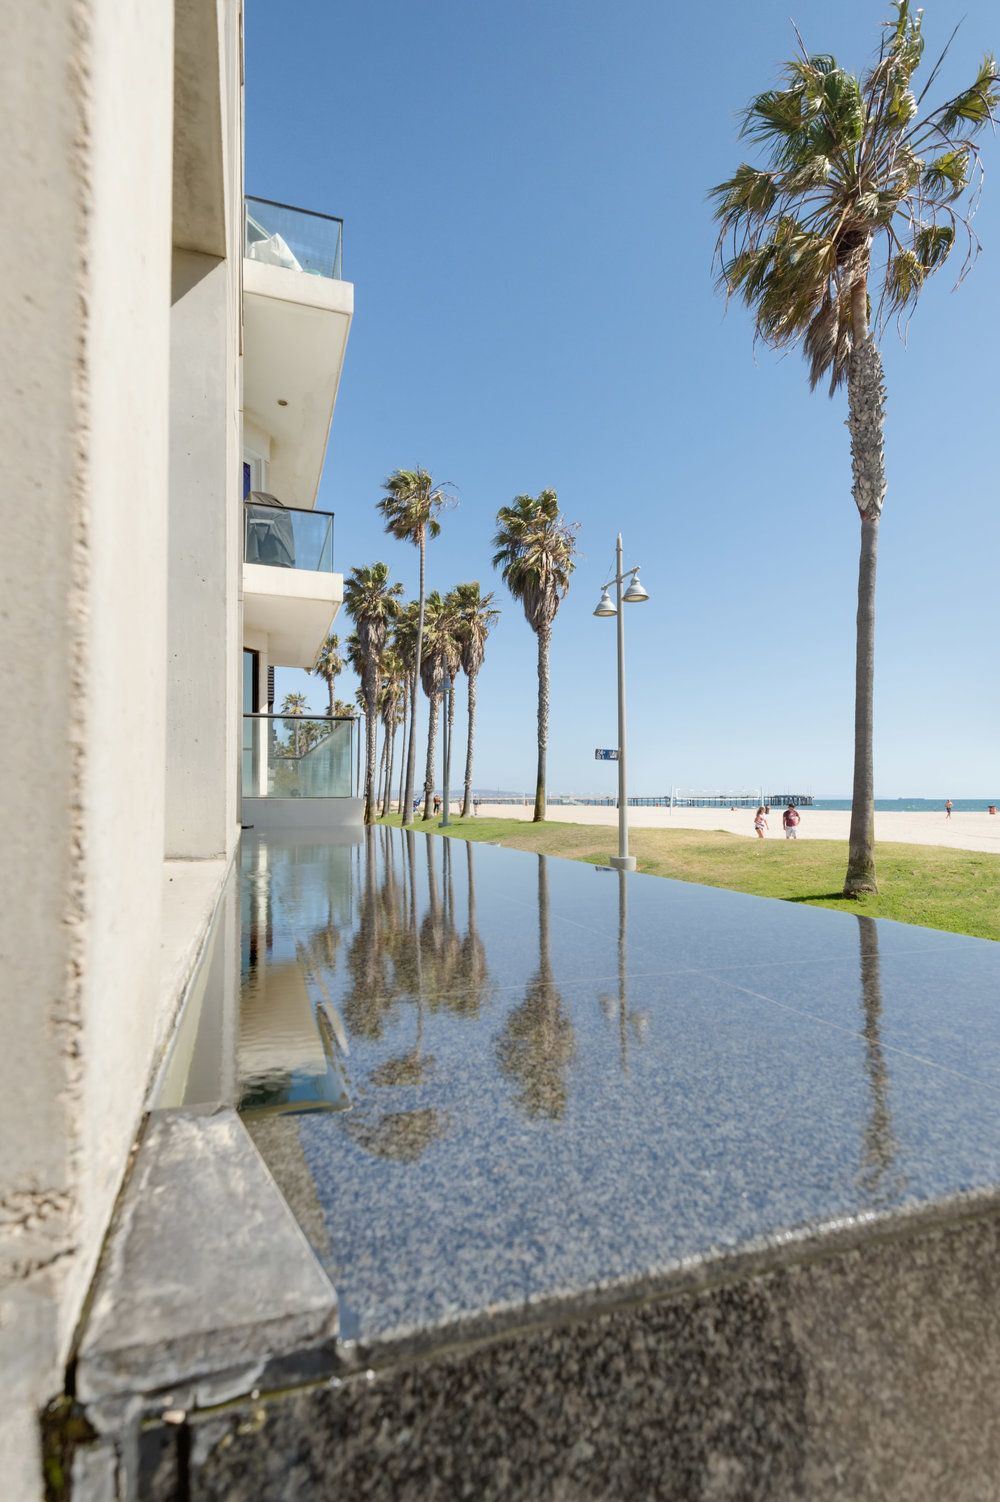 024 Beach Ocean Front Walk Venice For Sale Lease The Malibu Life Team Luxury Real Estate.jpg